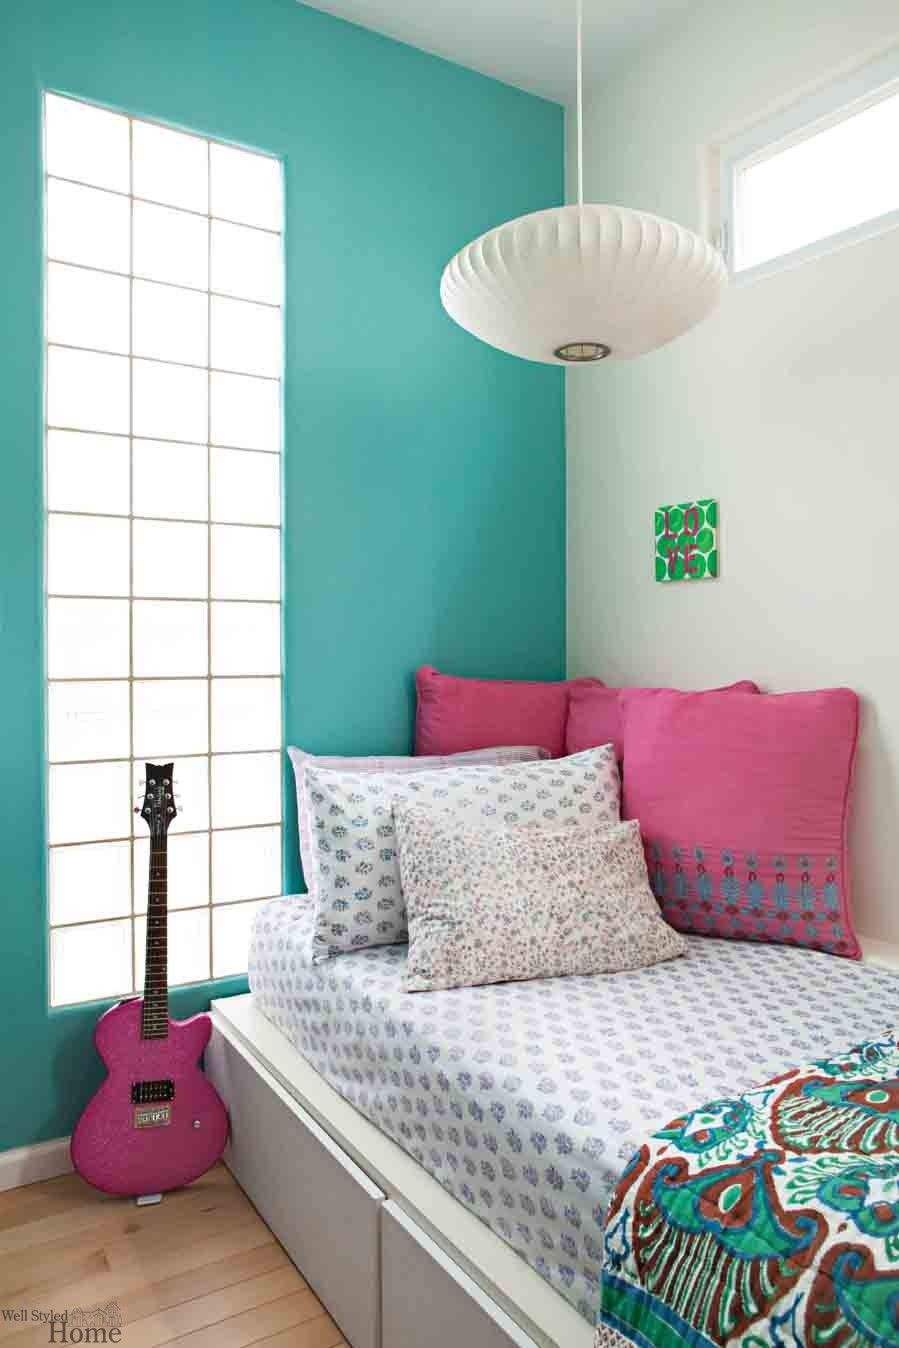 Girly Tips for a Teen Girls Bedroom Decor Ideas